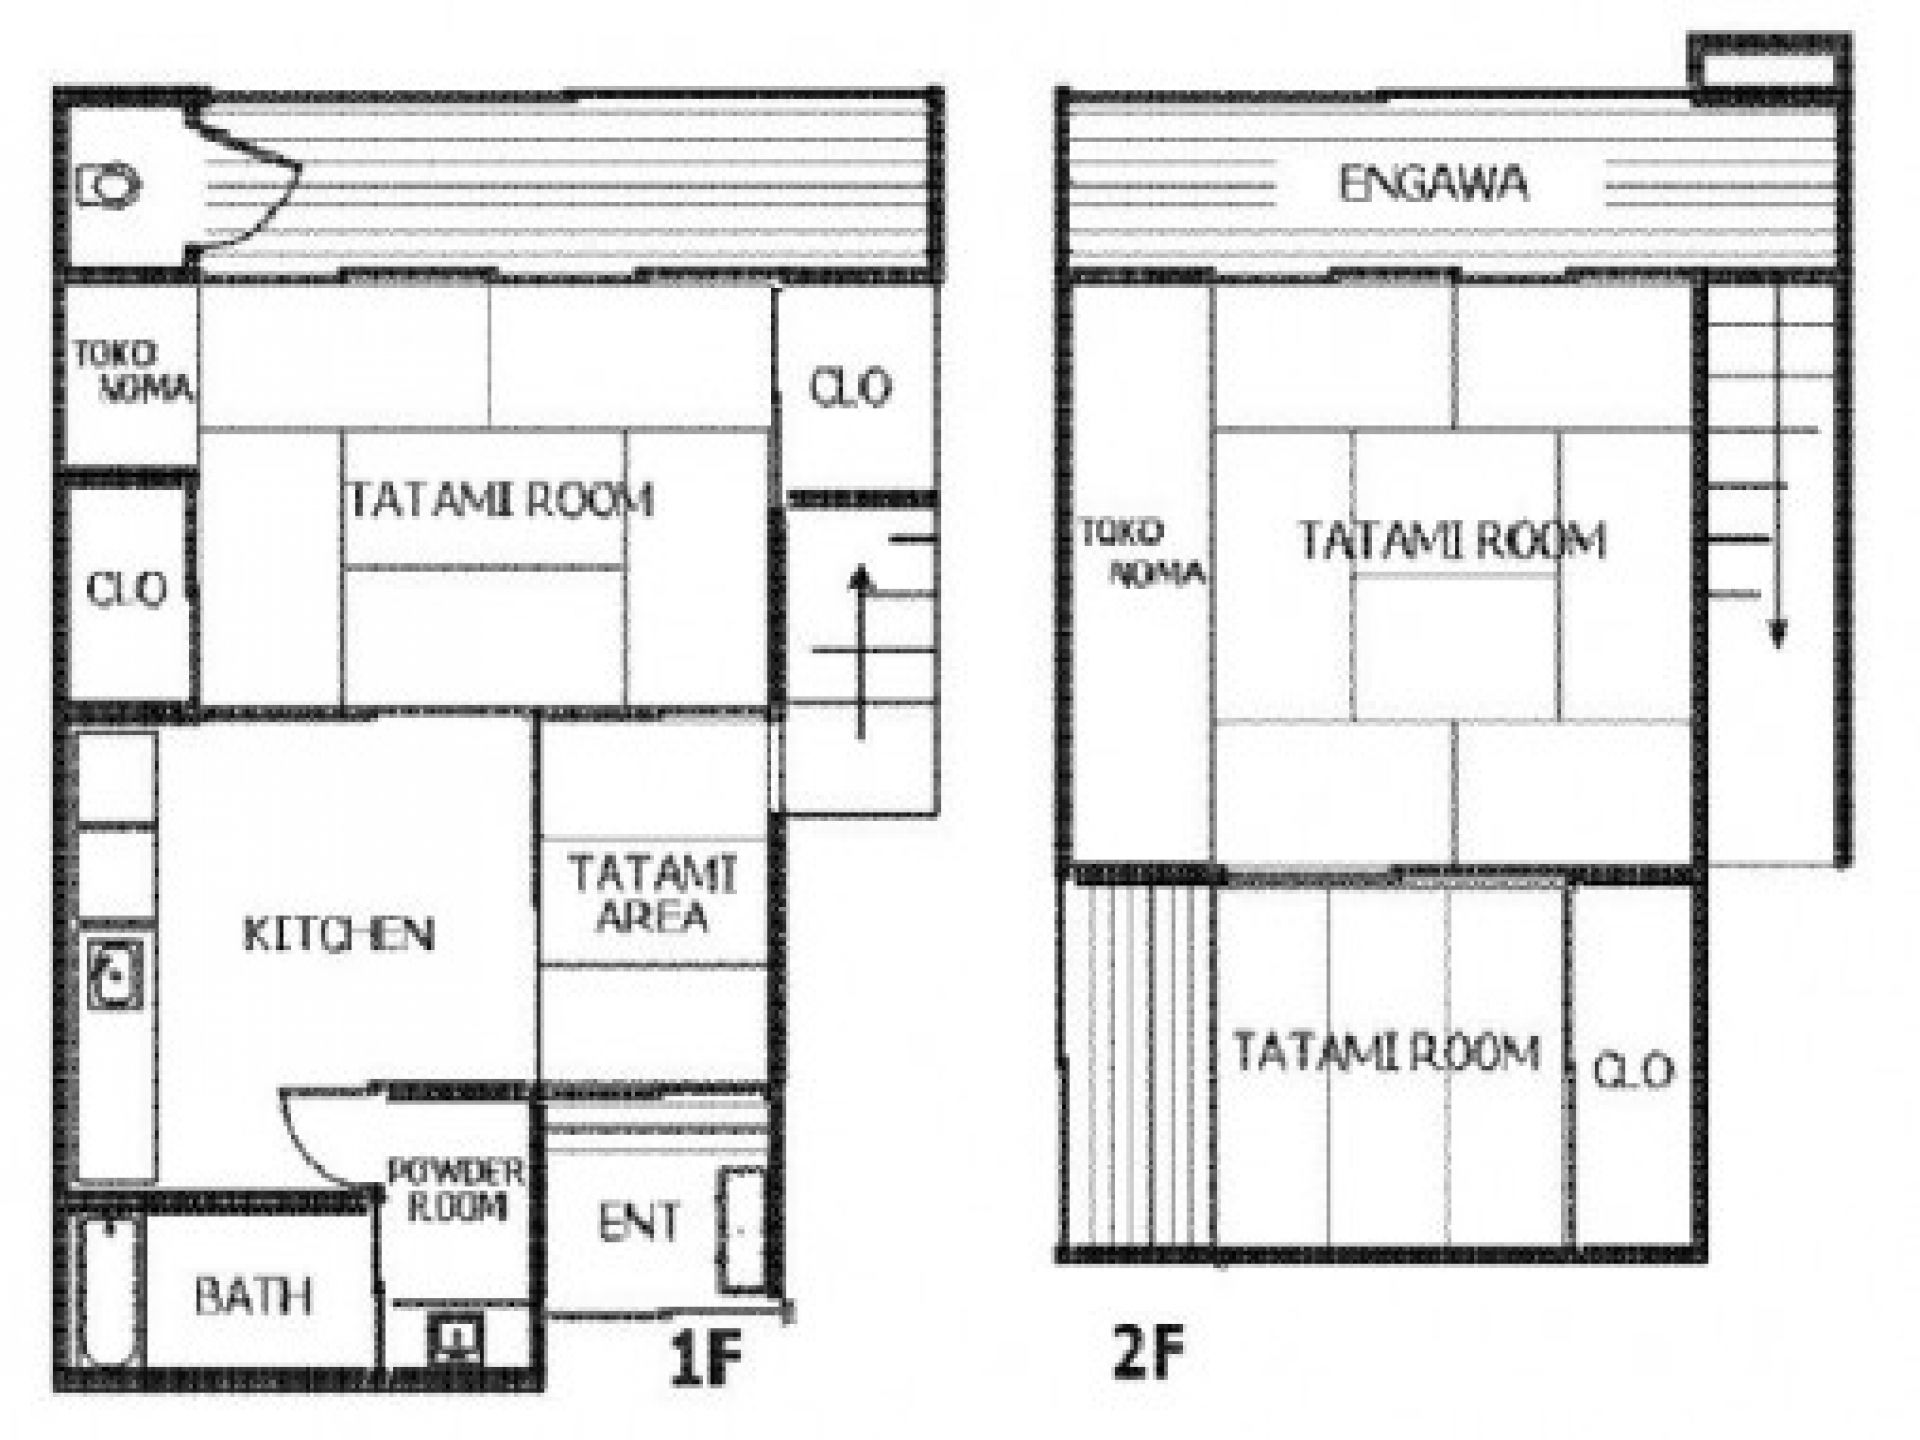 Grundriss Japanisches Haus traditional japanese mansion floor plans misc